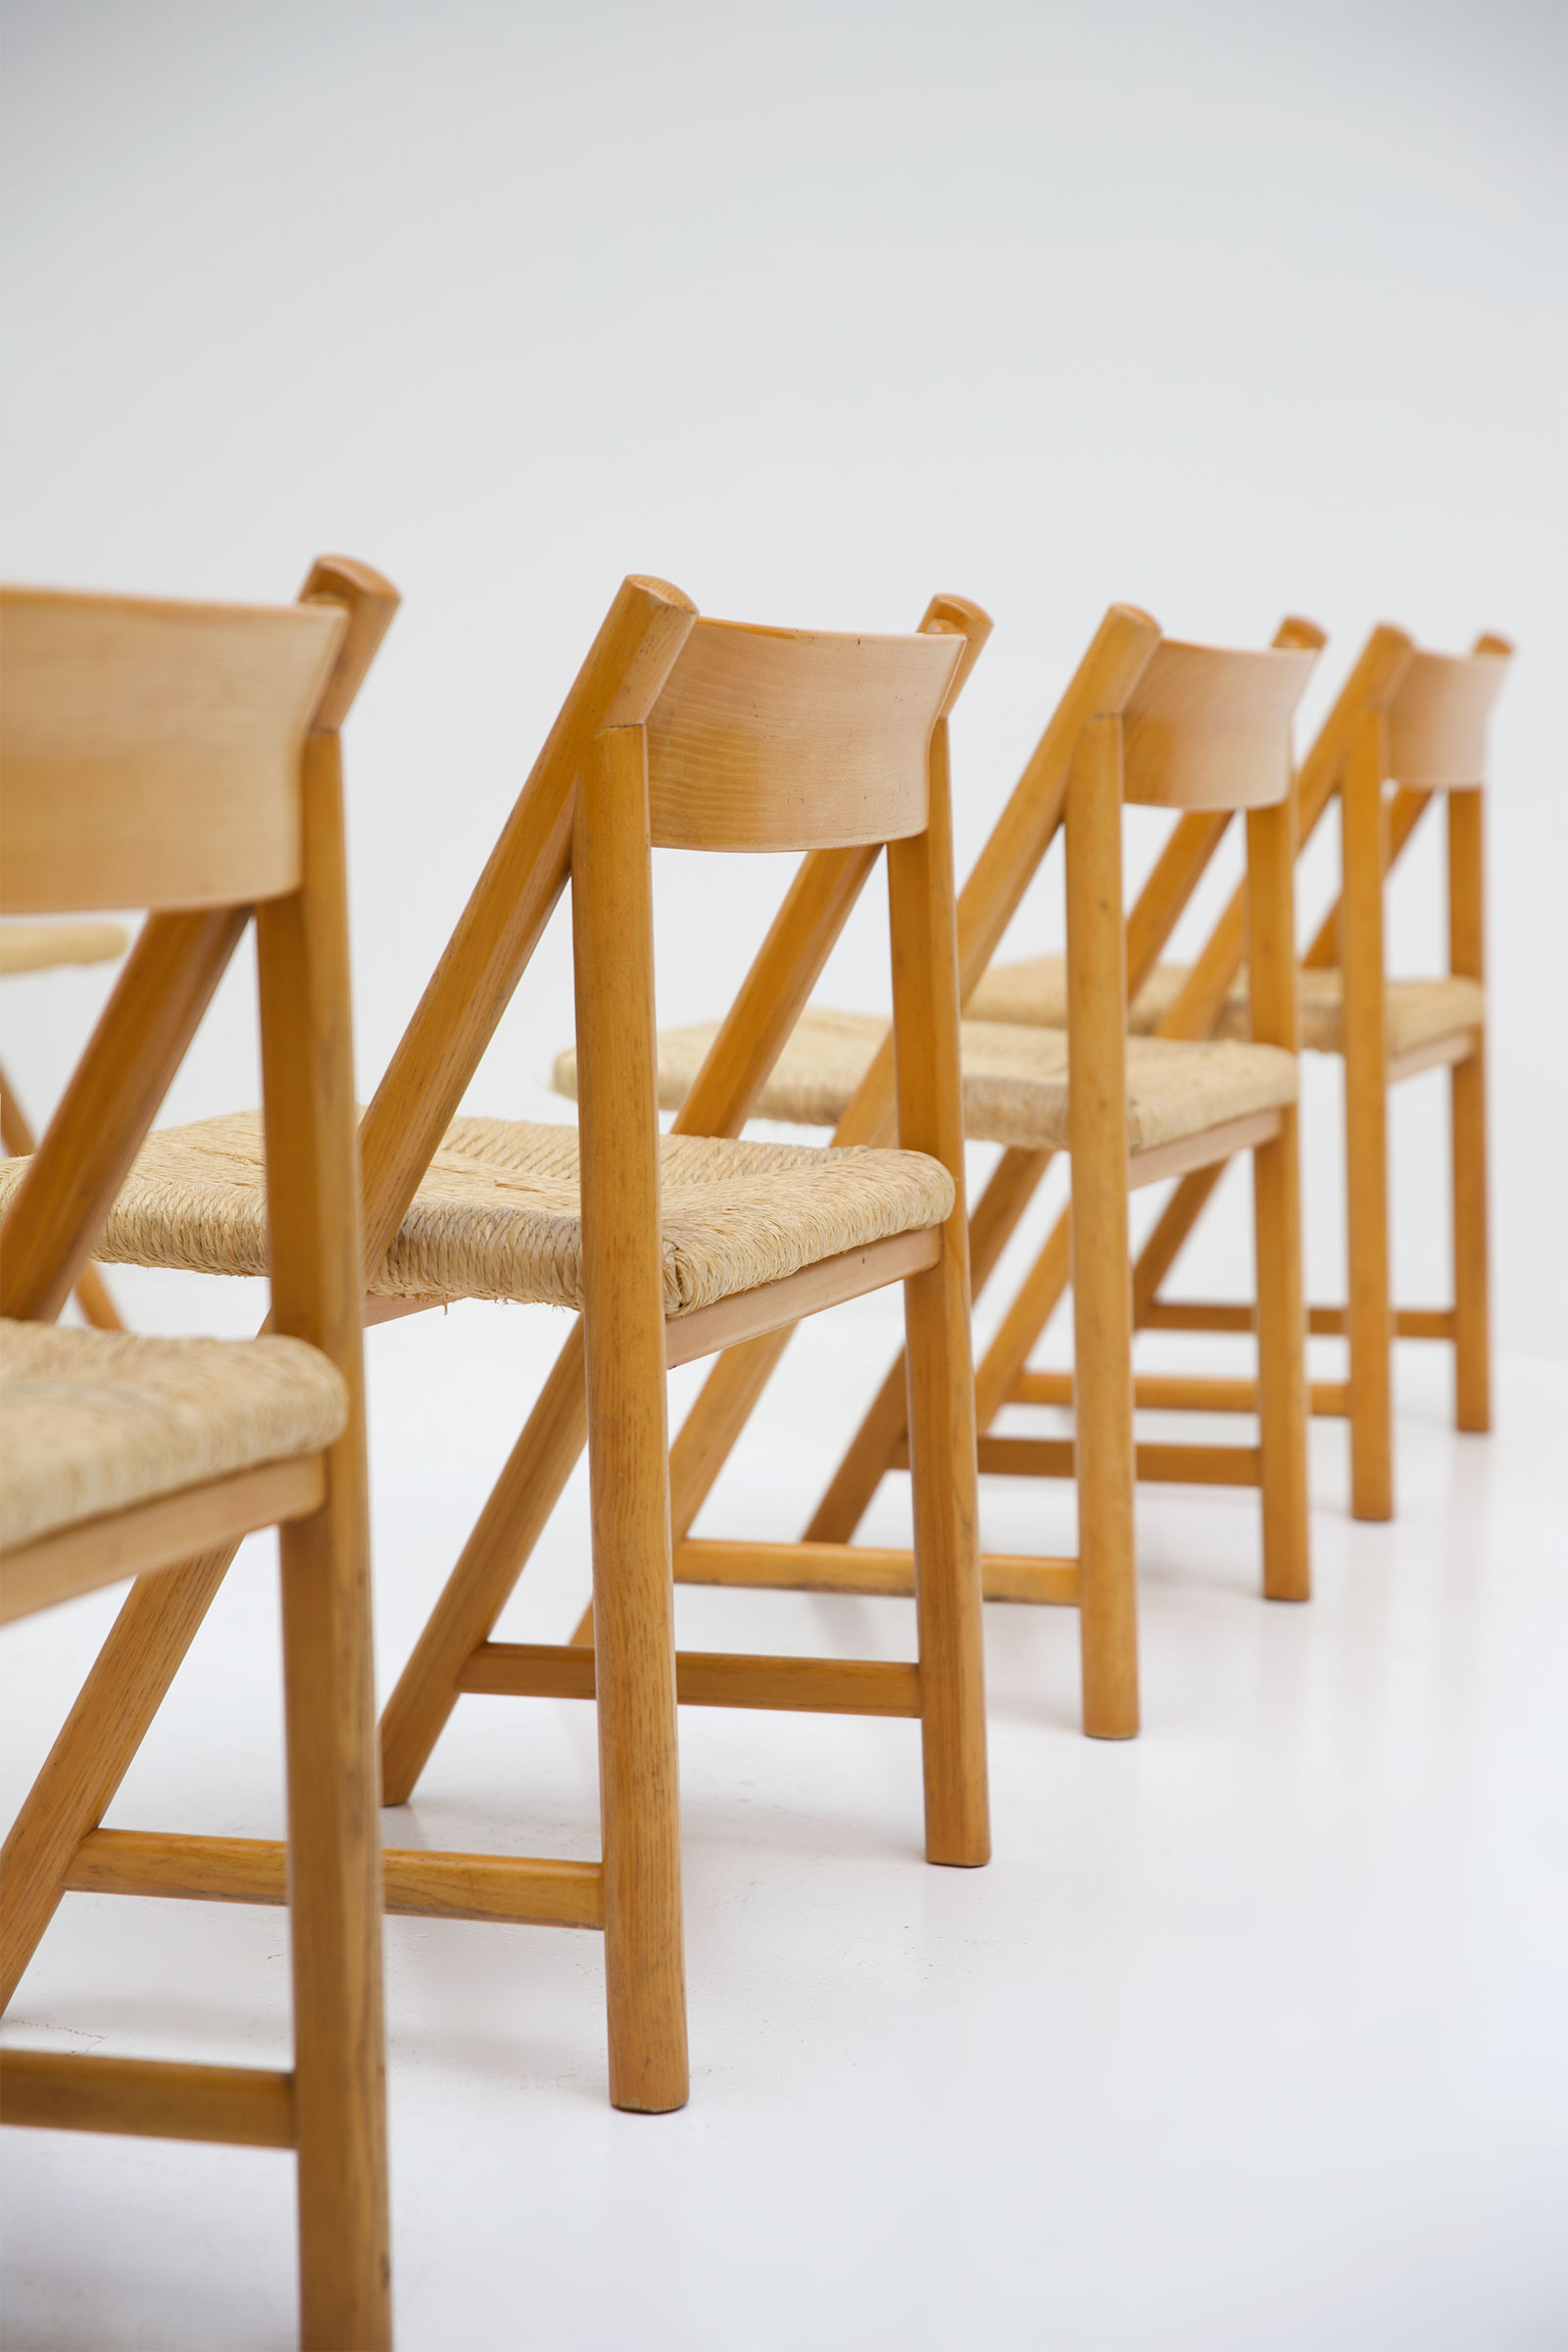 1960s Woven Cane Chairsimage 4